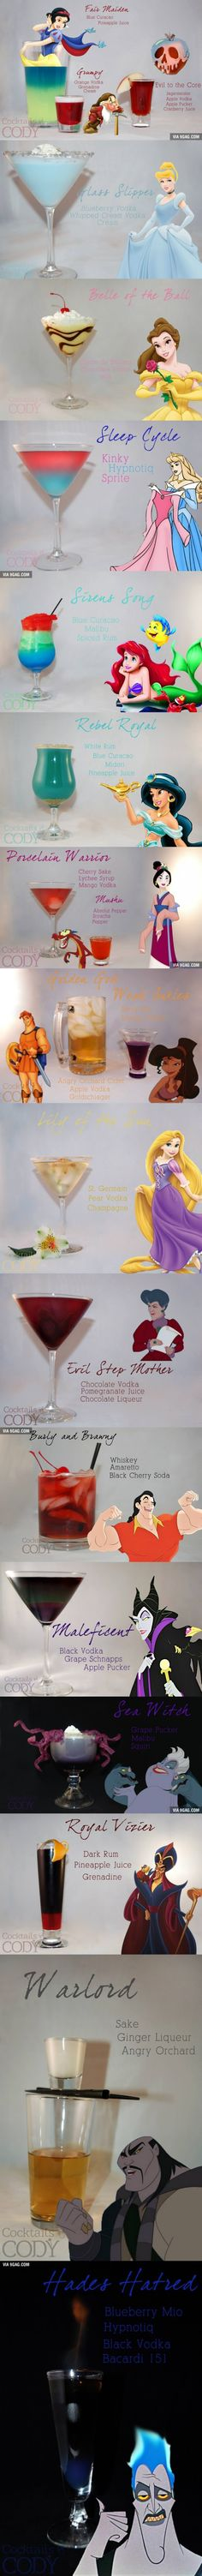 16 Disney Themed Cocktails You Will Want To Try - 9GAG